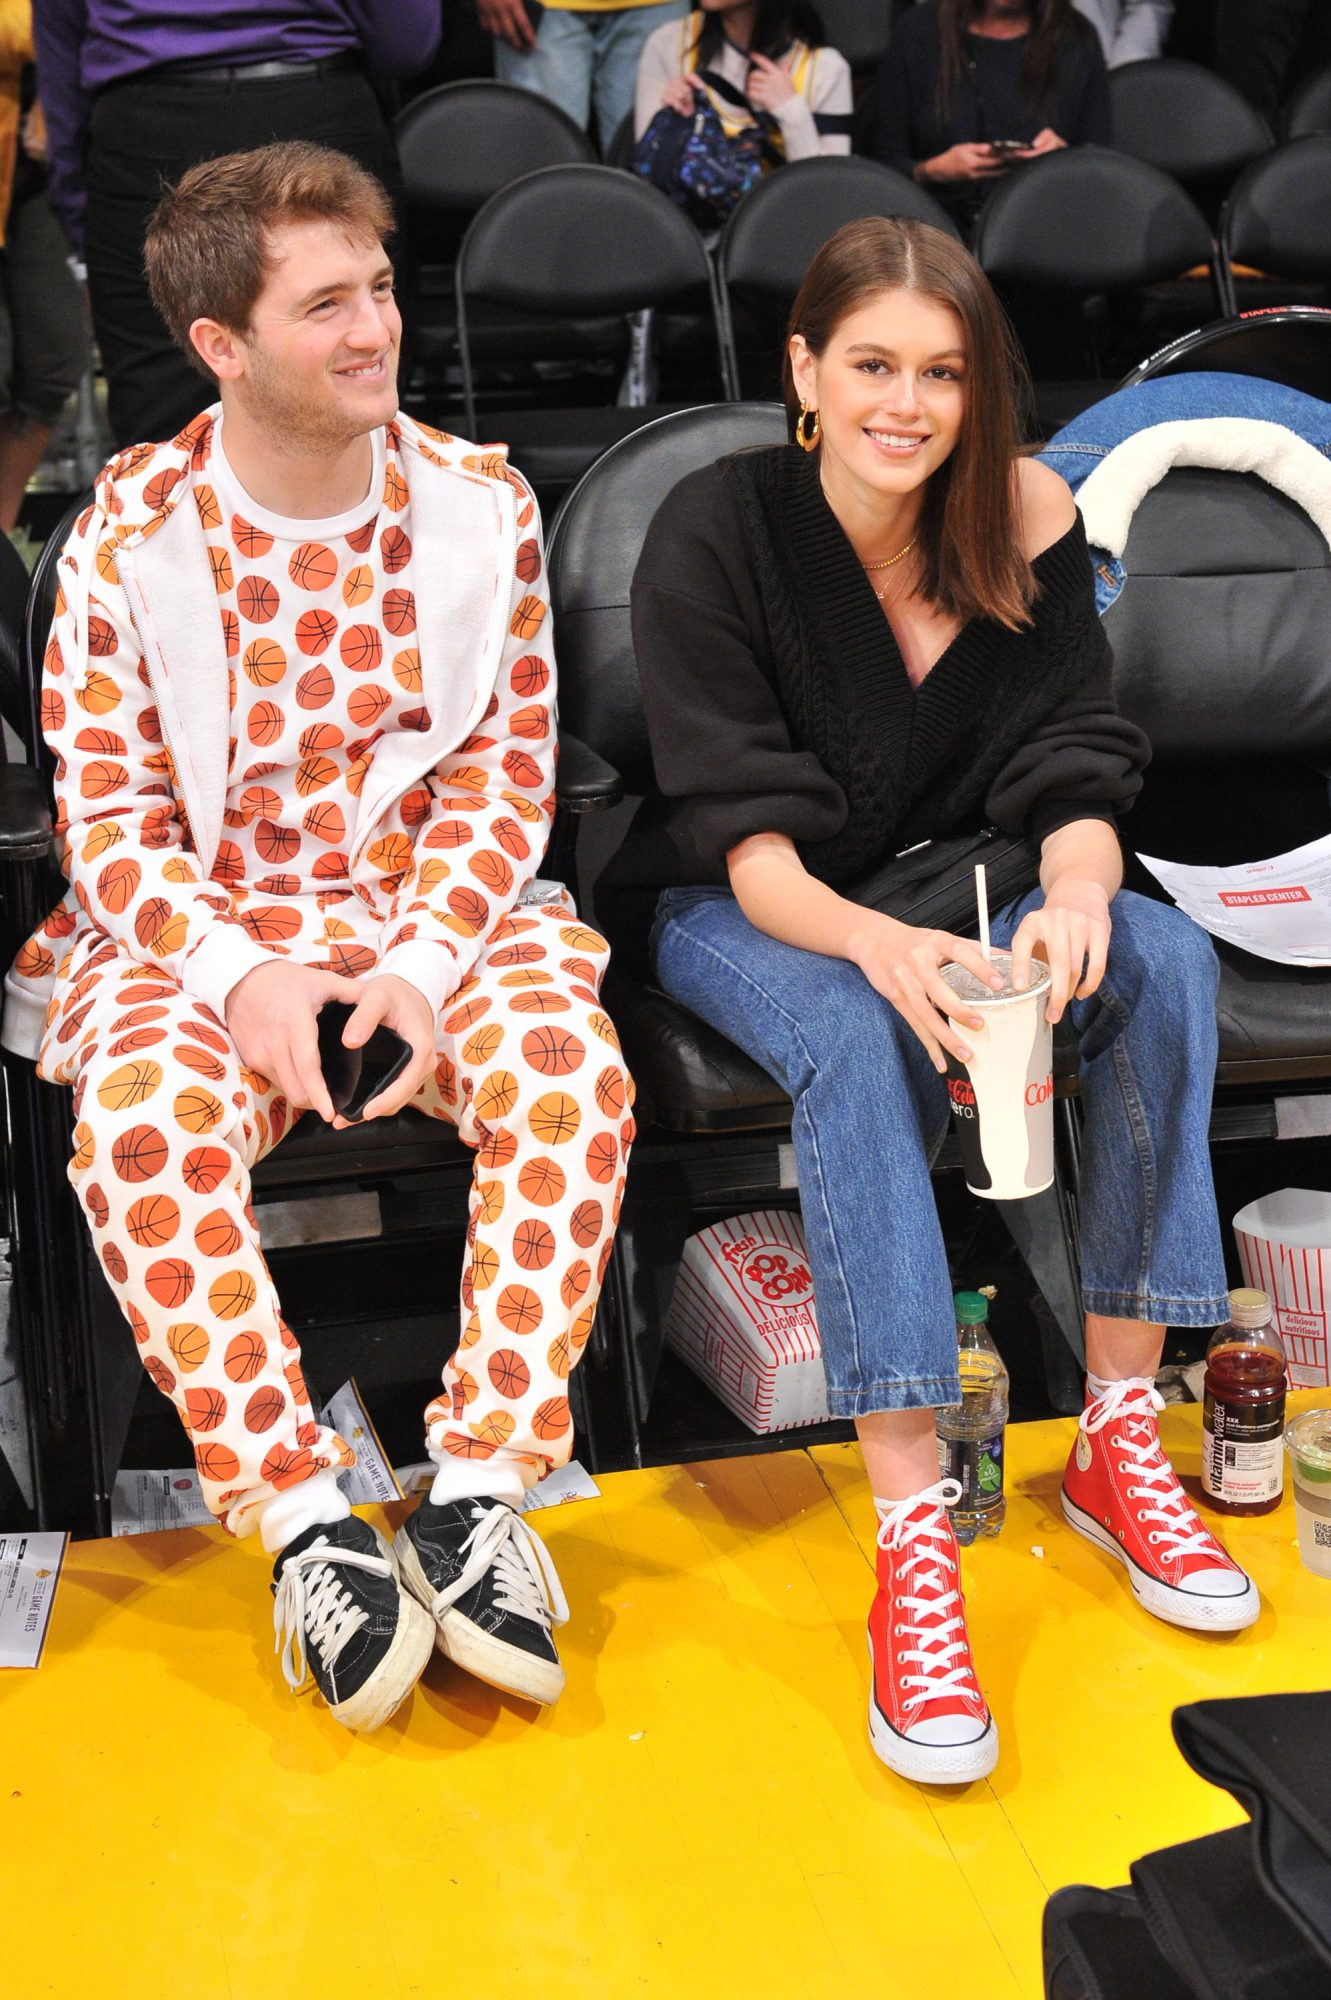 What to wear to a basketball game outfit ideas